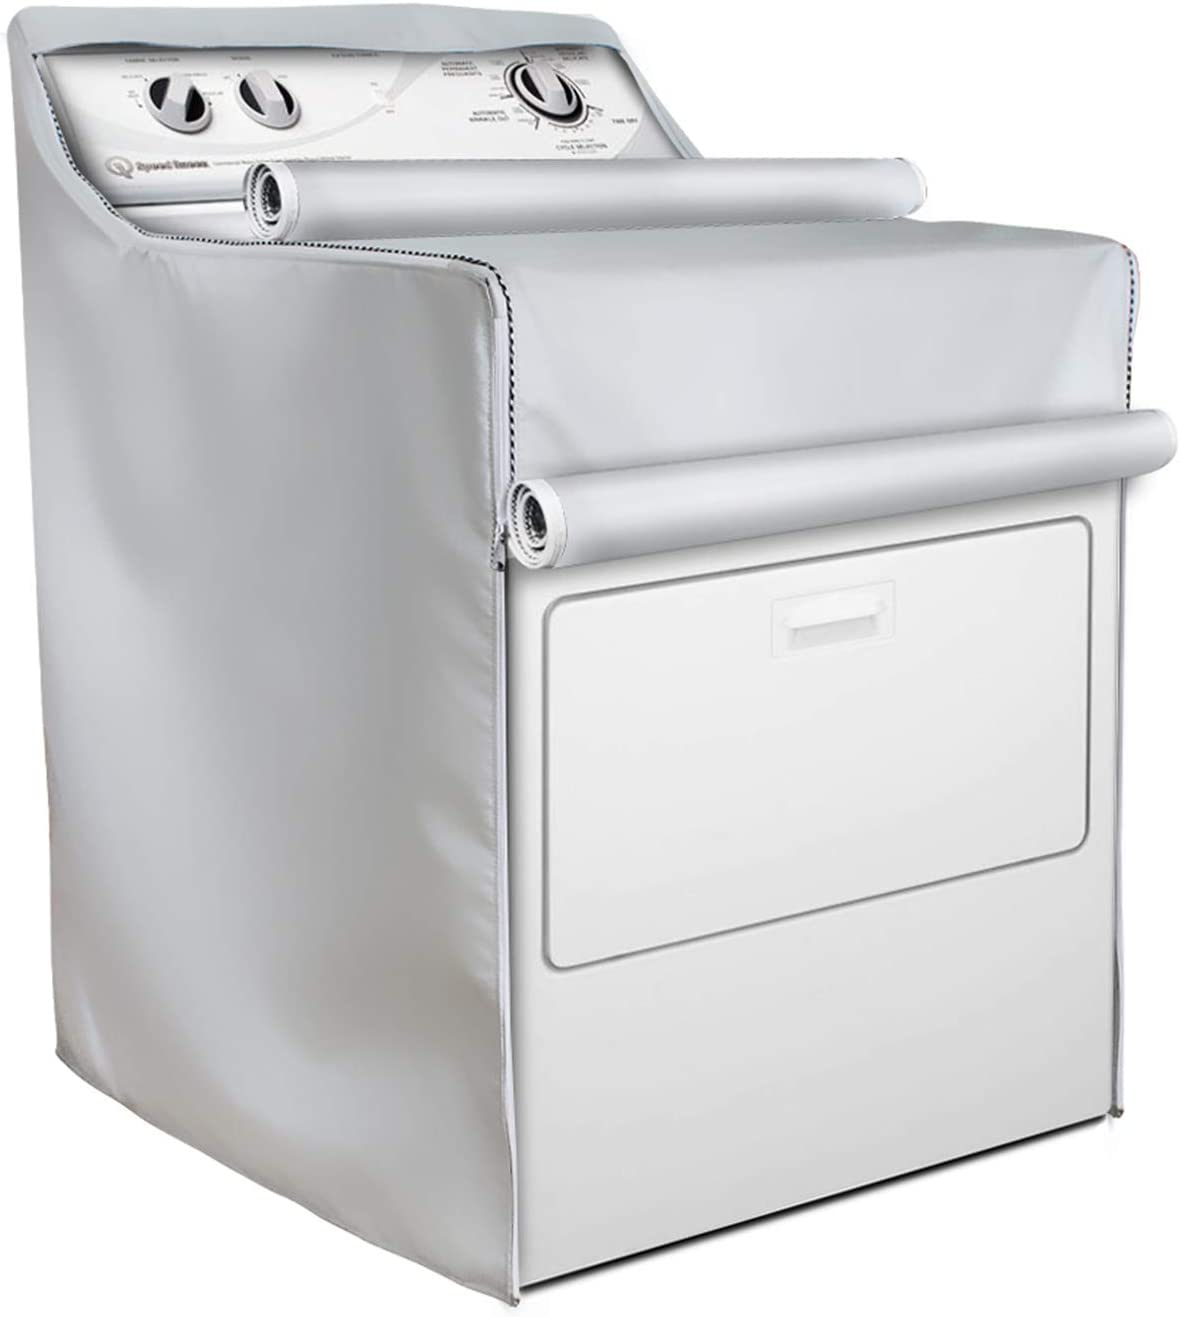 Washer/Dryer Cover,Fit for Outdoor Top Load and Front Load Machine